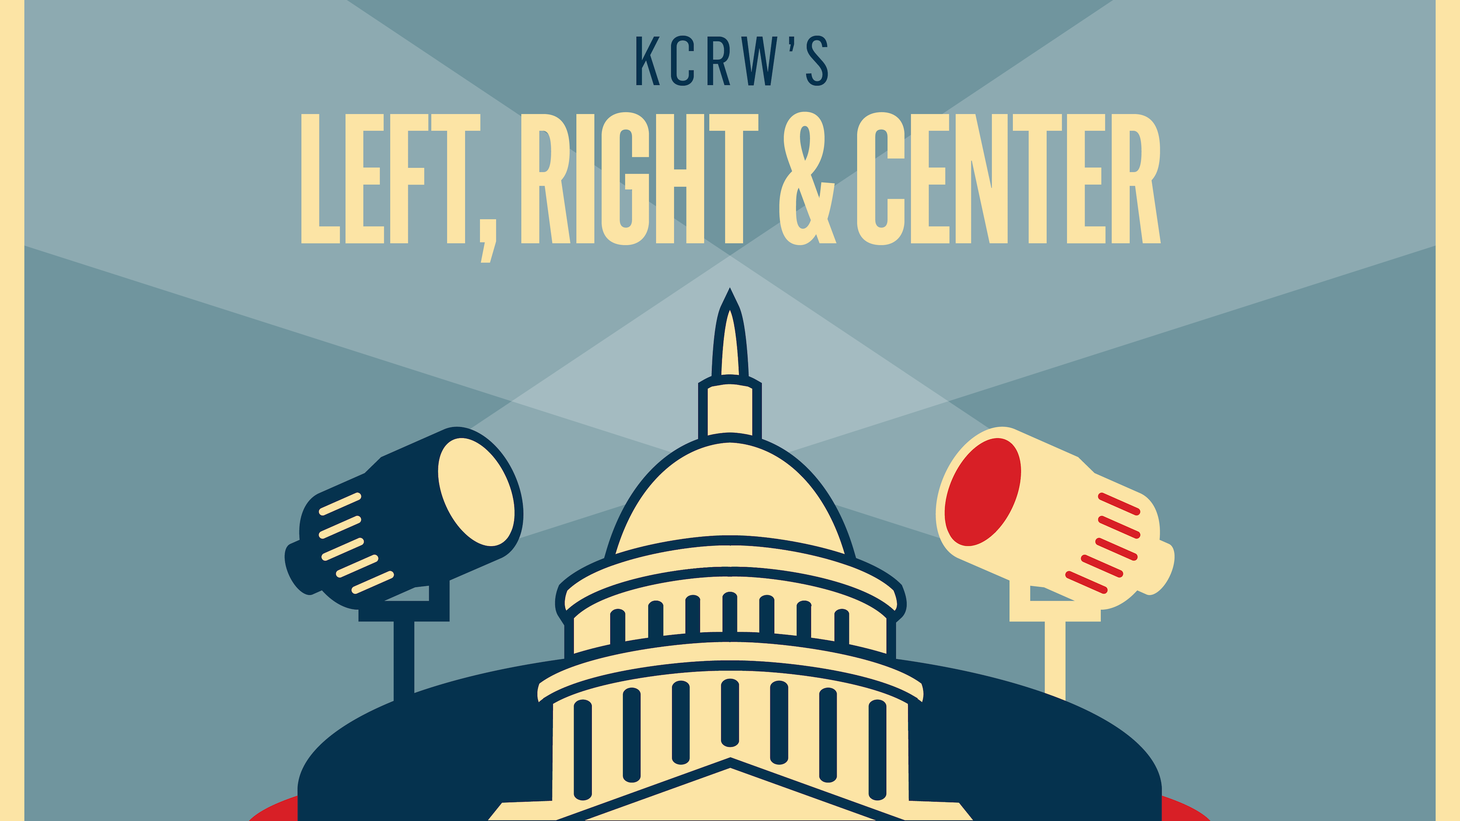 In this special episode of Left, Right & Center, Josh Barro moderates a discussion on the political center.